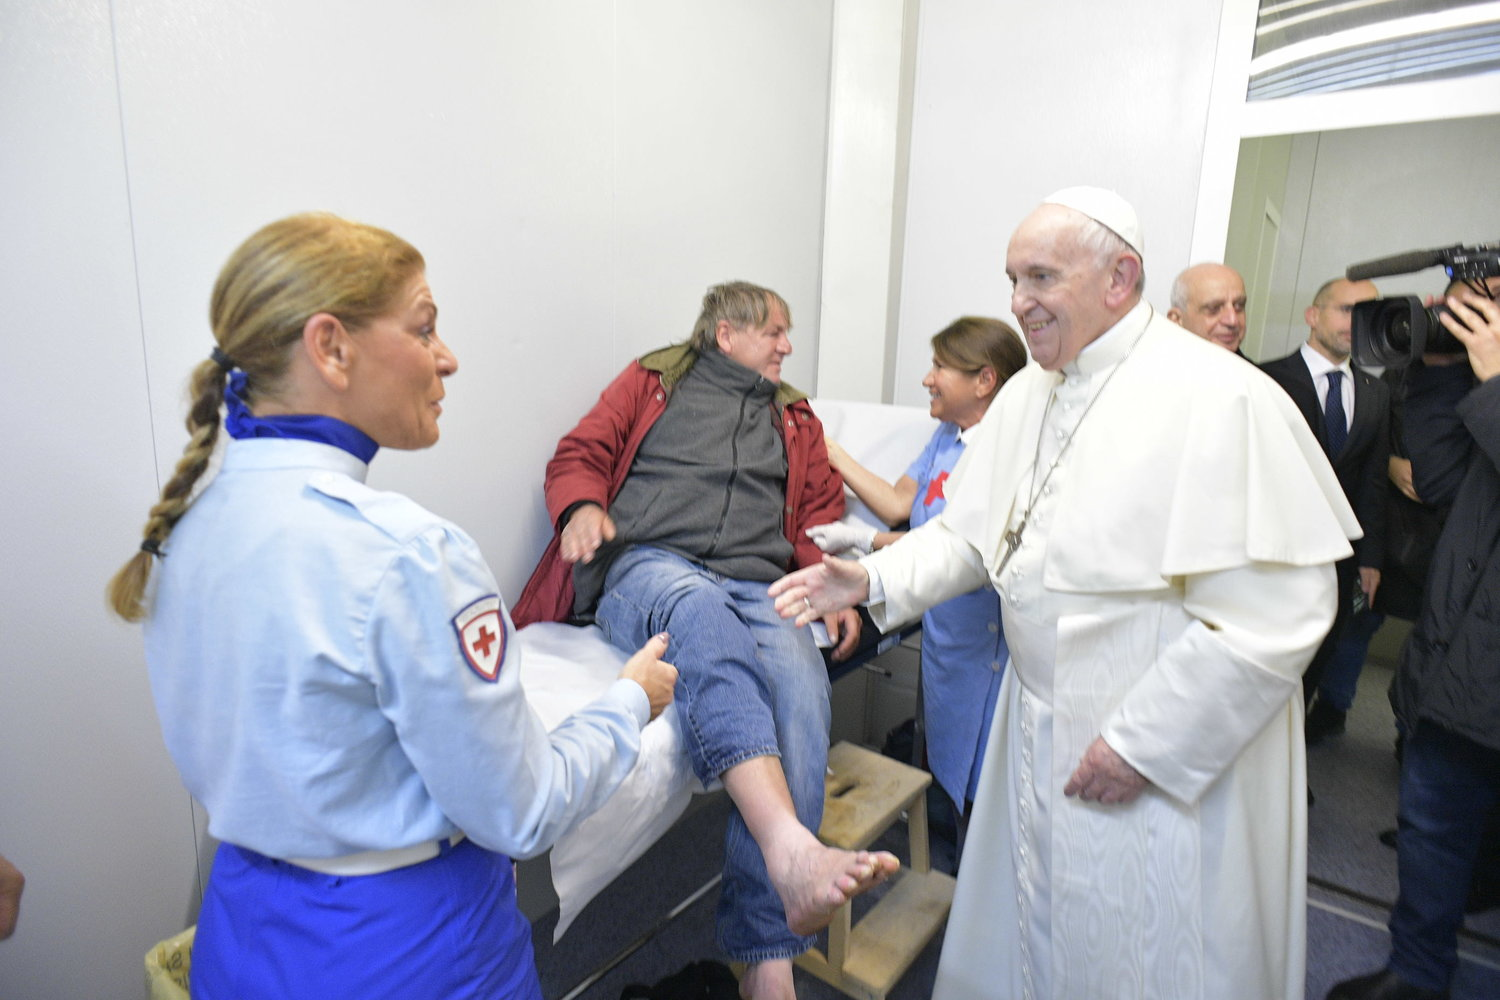 Pope Francis visits a medical clinic in St. Peter's Square at the Vatican Nov. 15, 2019. The clinic, staffed by doctors, nurses and volunteers, offered medical services during the week leading up to the World Day of the Poor.